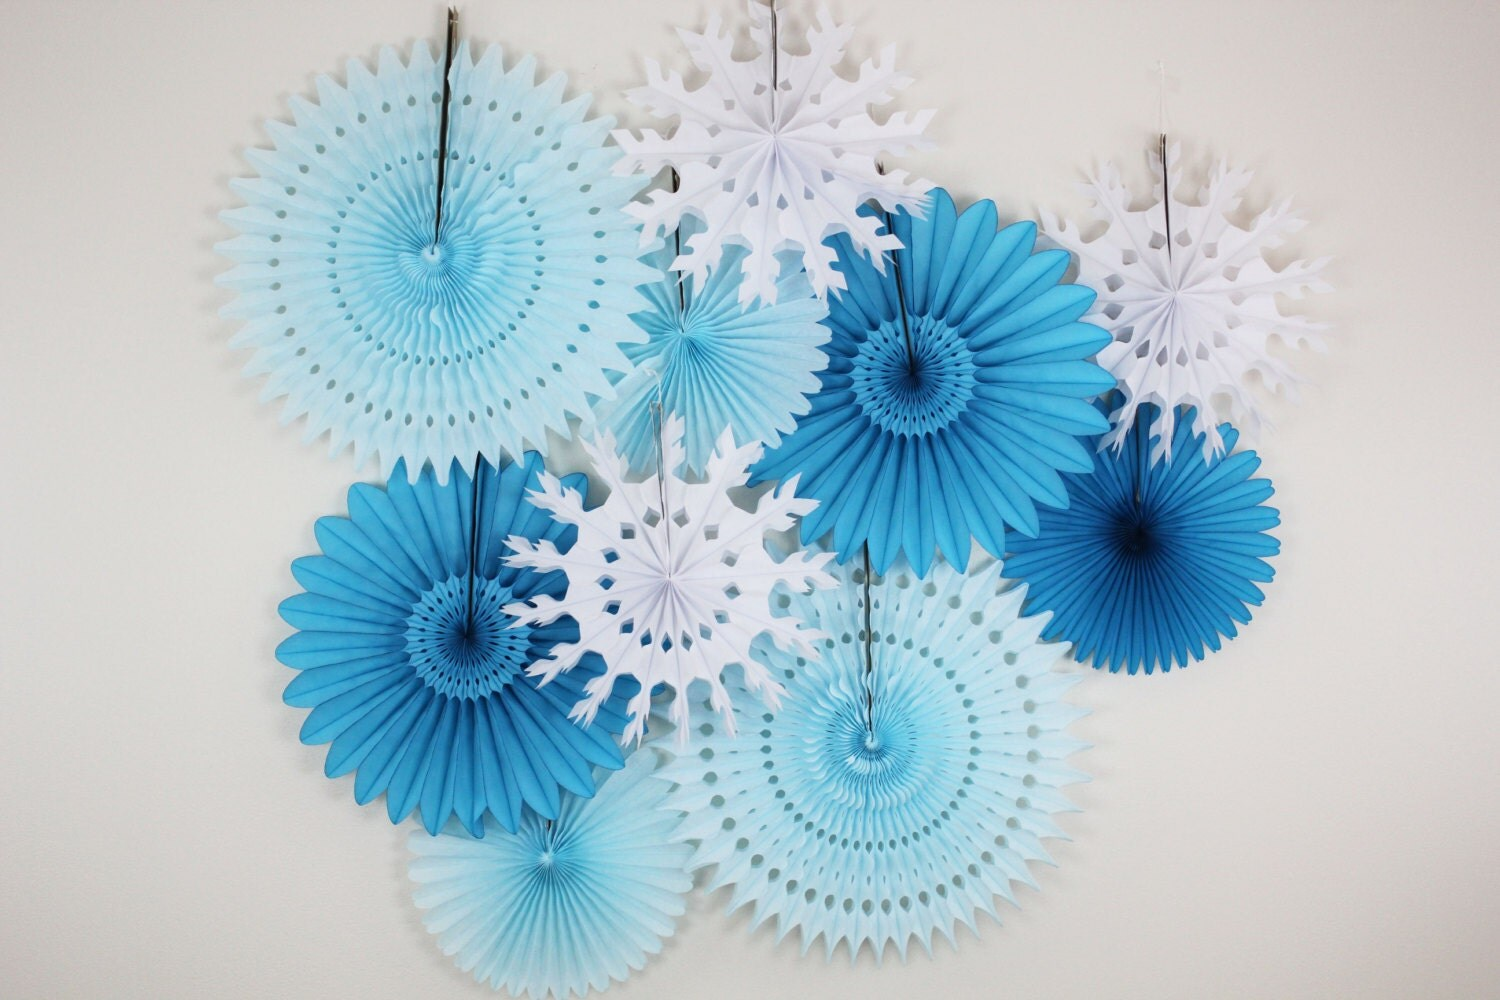 Birthday Decorations Tissue Paper Fans snowflake light